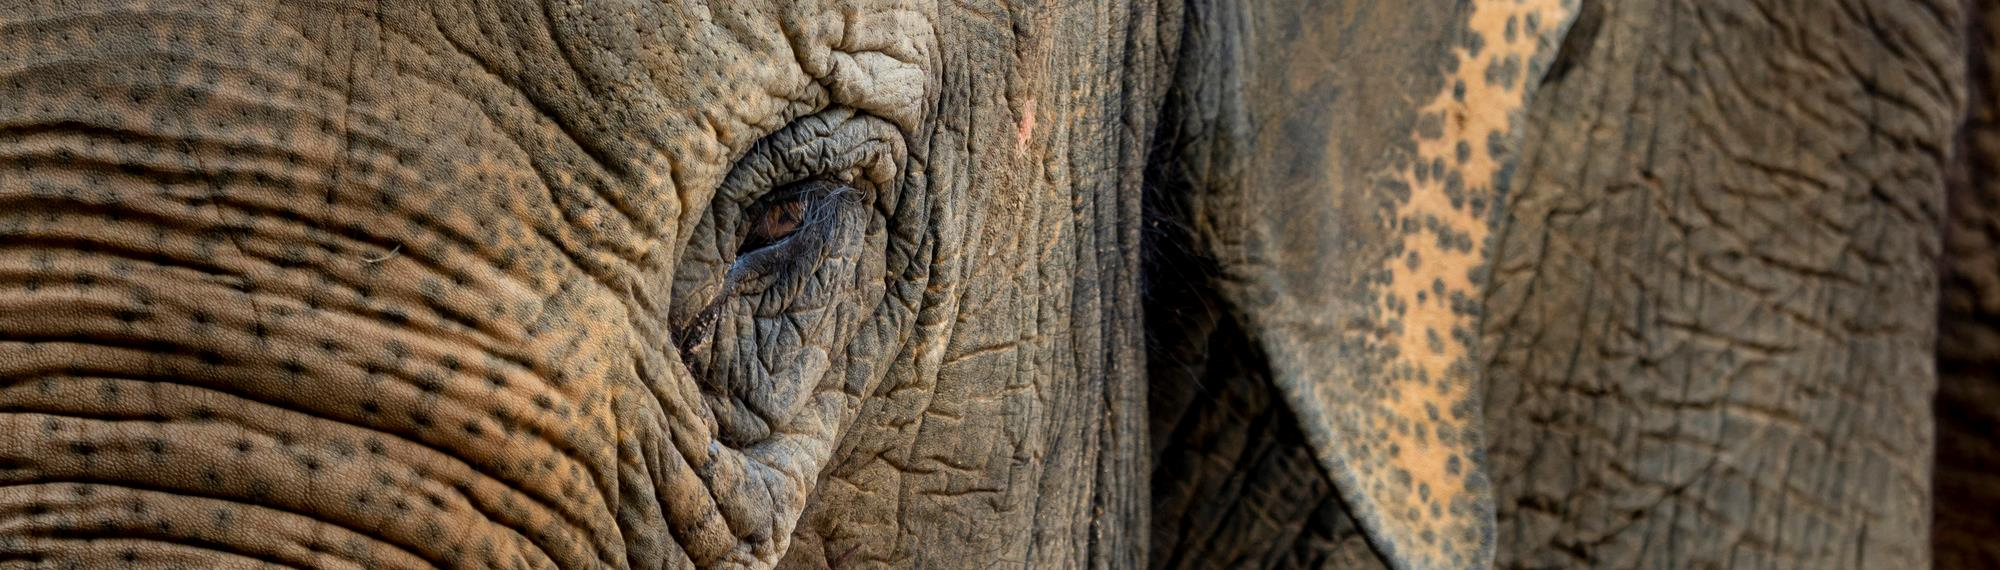 Close up view of elephants eye.